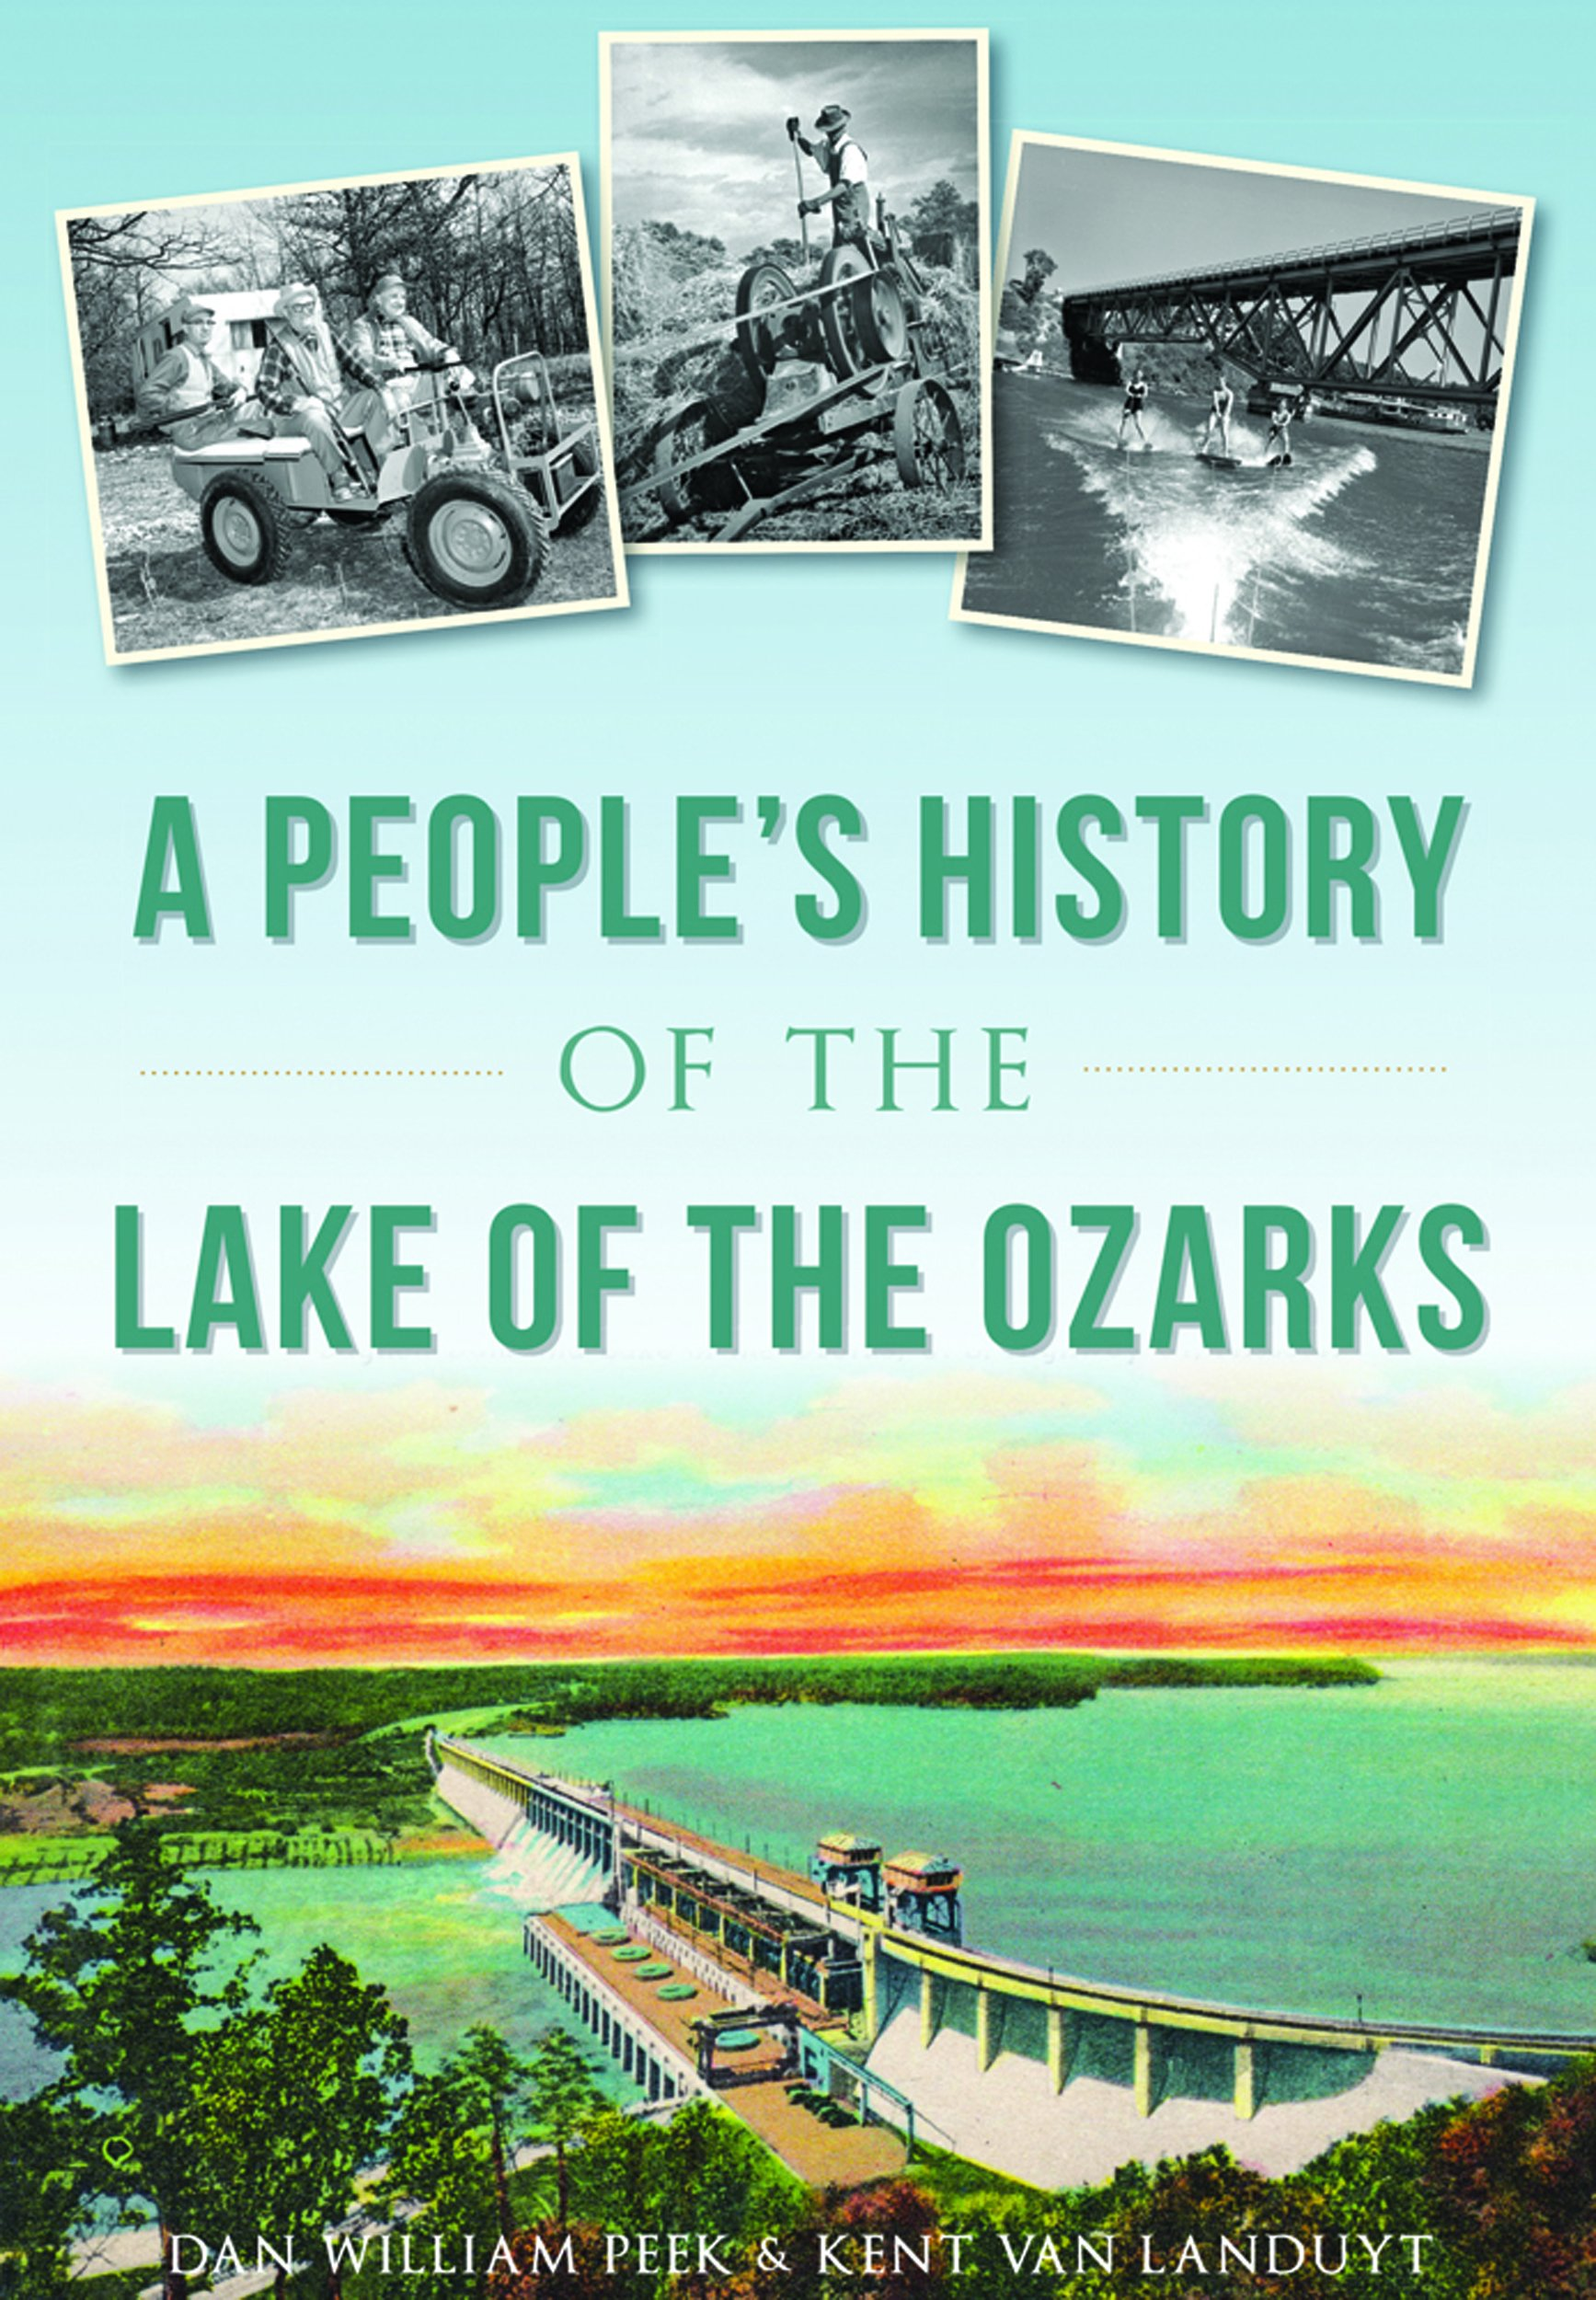 Download A People's History of the Lake of the Ozarks ePub fb2 book